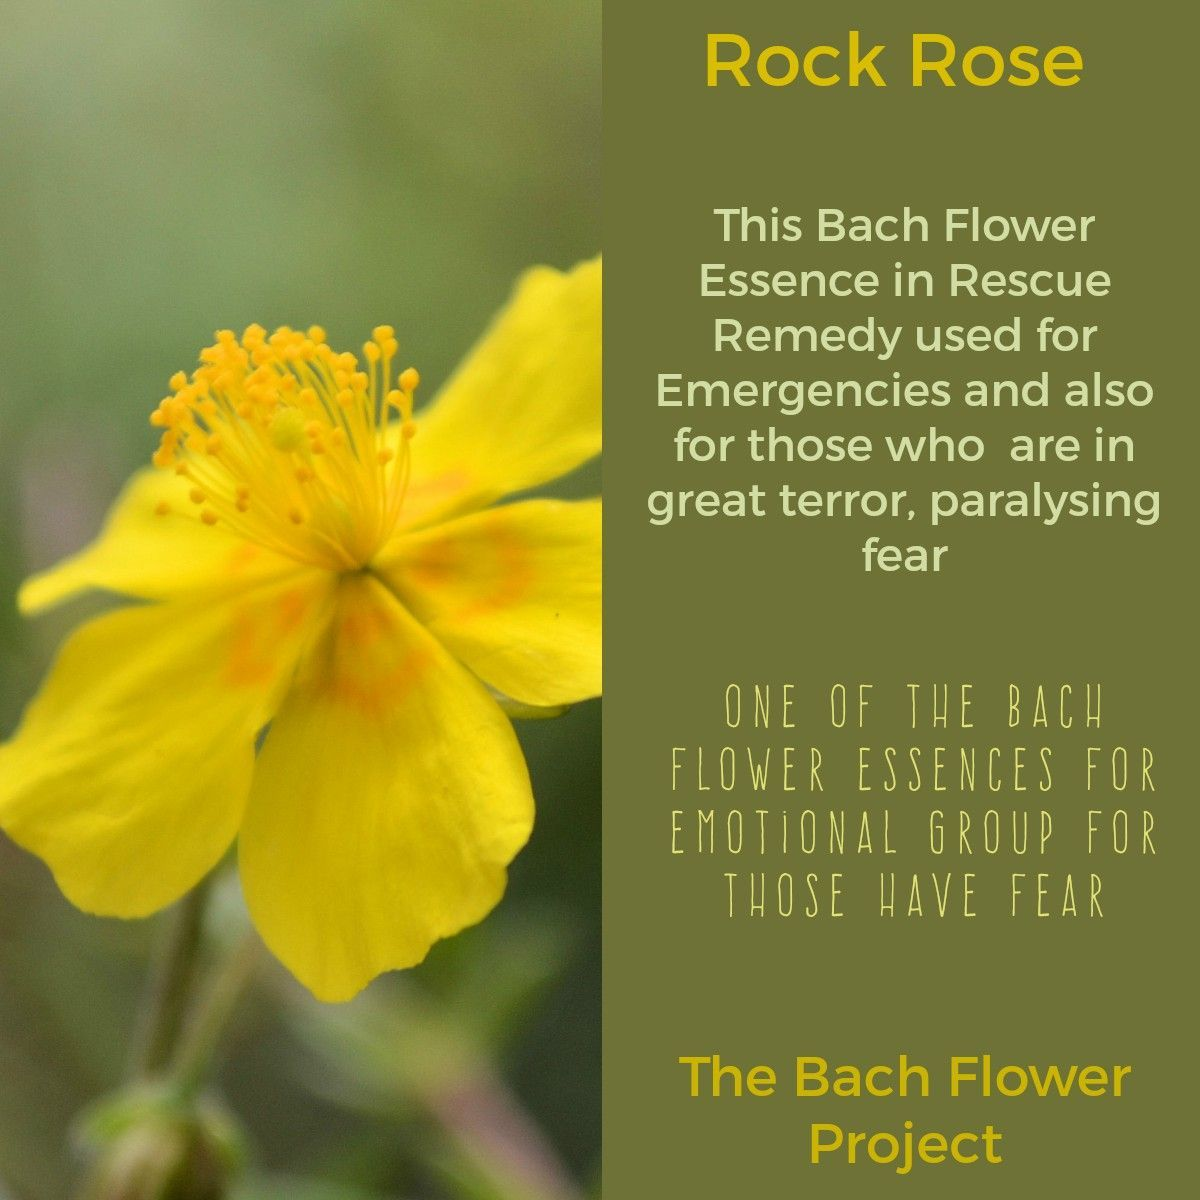 Bach Flower Essence Remedies Rock Rose One Of The 38 Dr Flower Essences Remedies Flower Essences Bach Flower Remedies